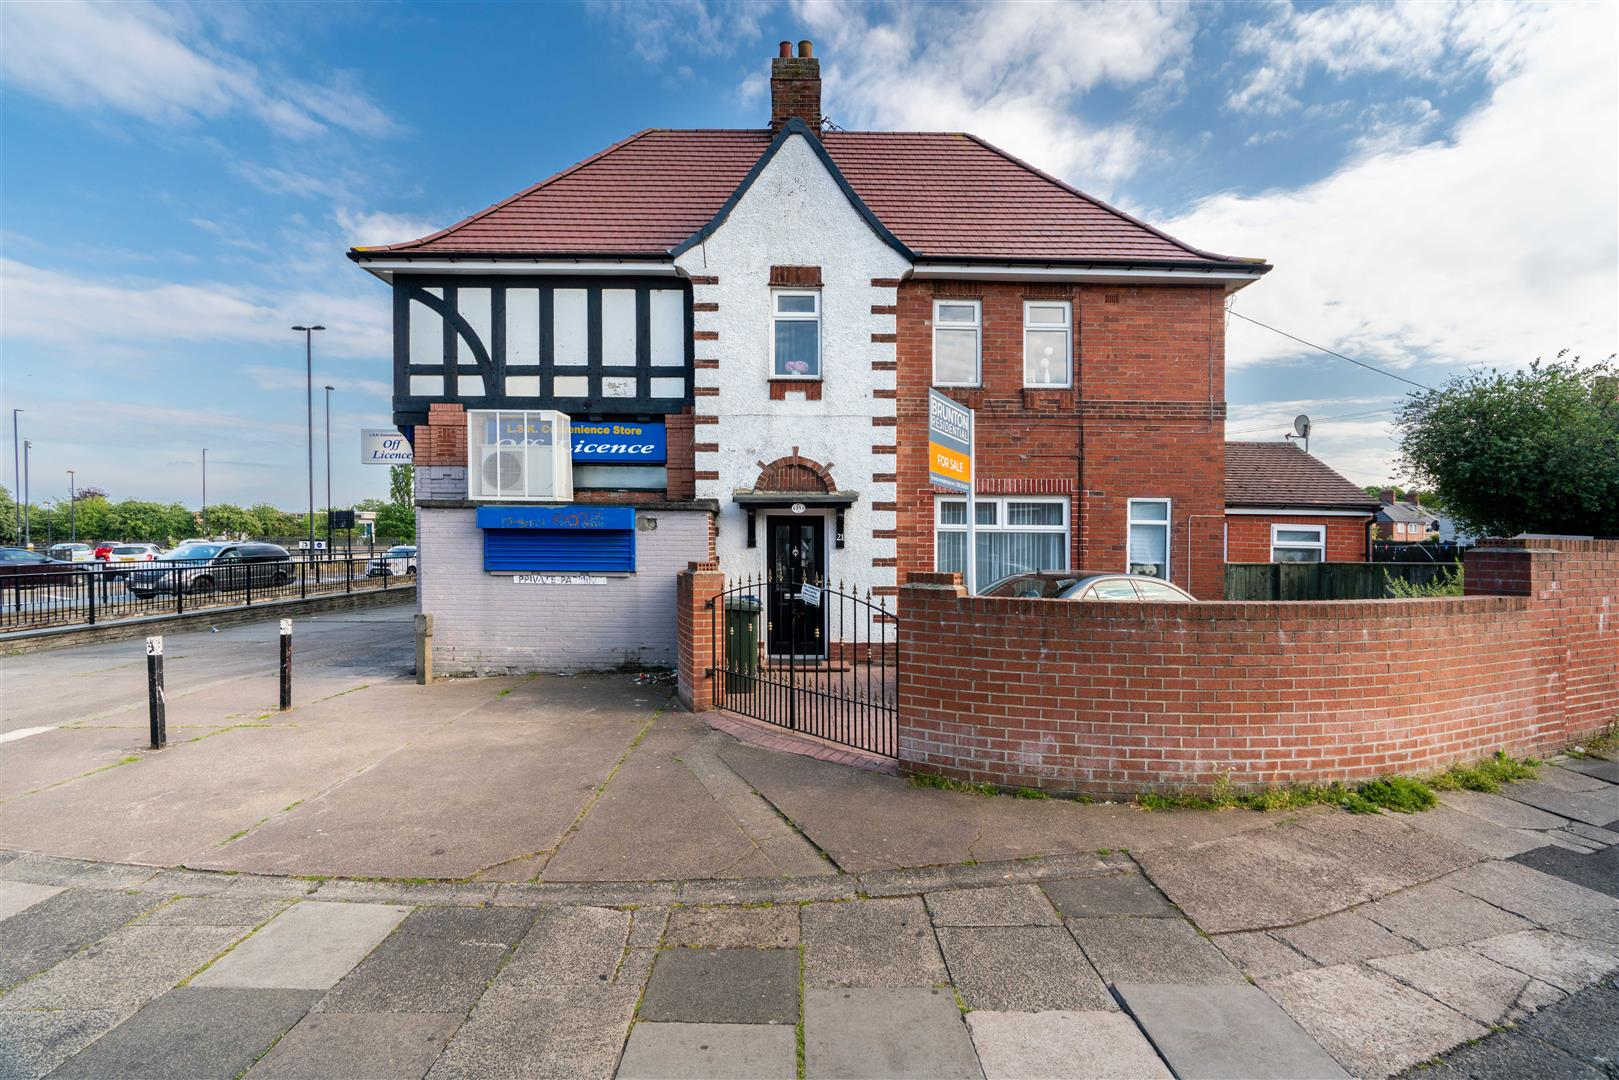 4 bed semi-detached house for sale in Benton Road, High Heaton - Property Image 1